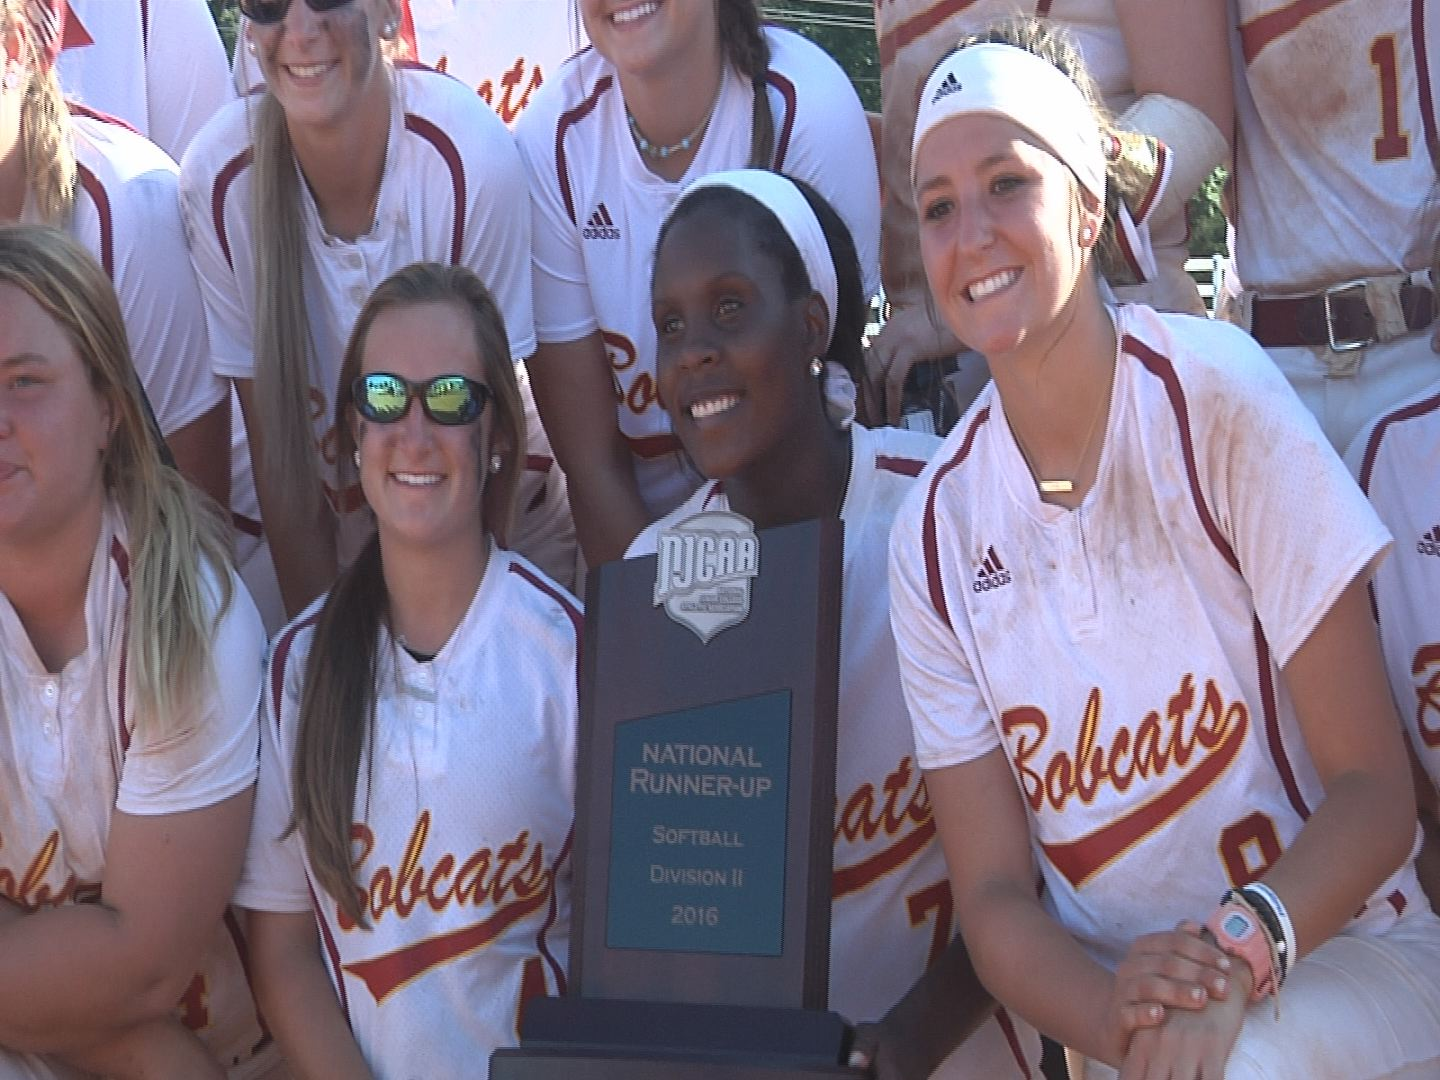 JCJC Softball National Runner-Up_164356